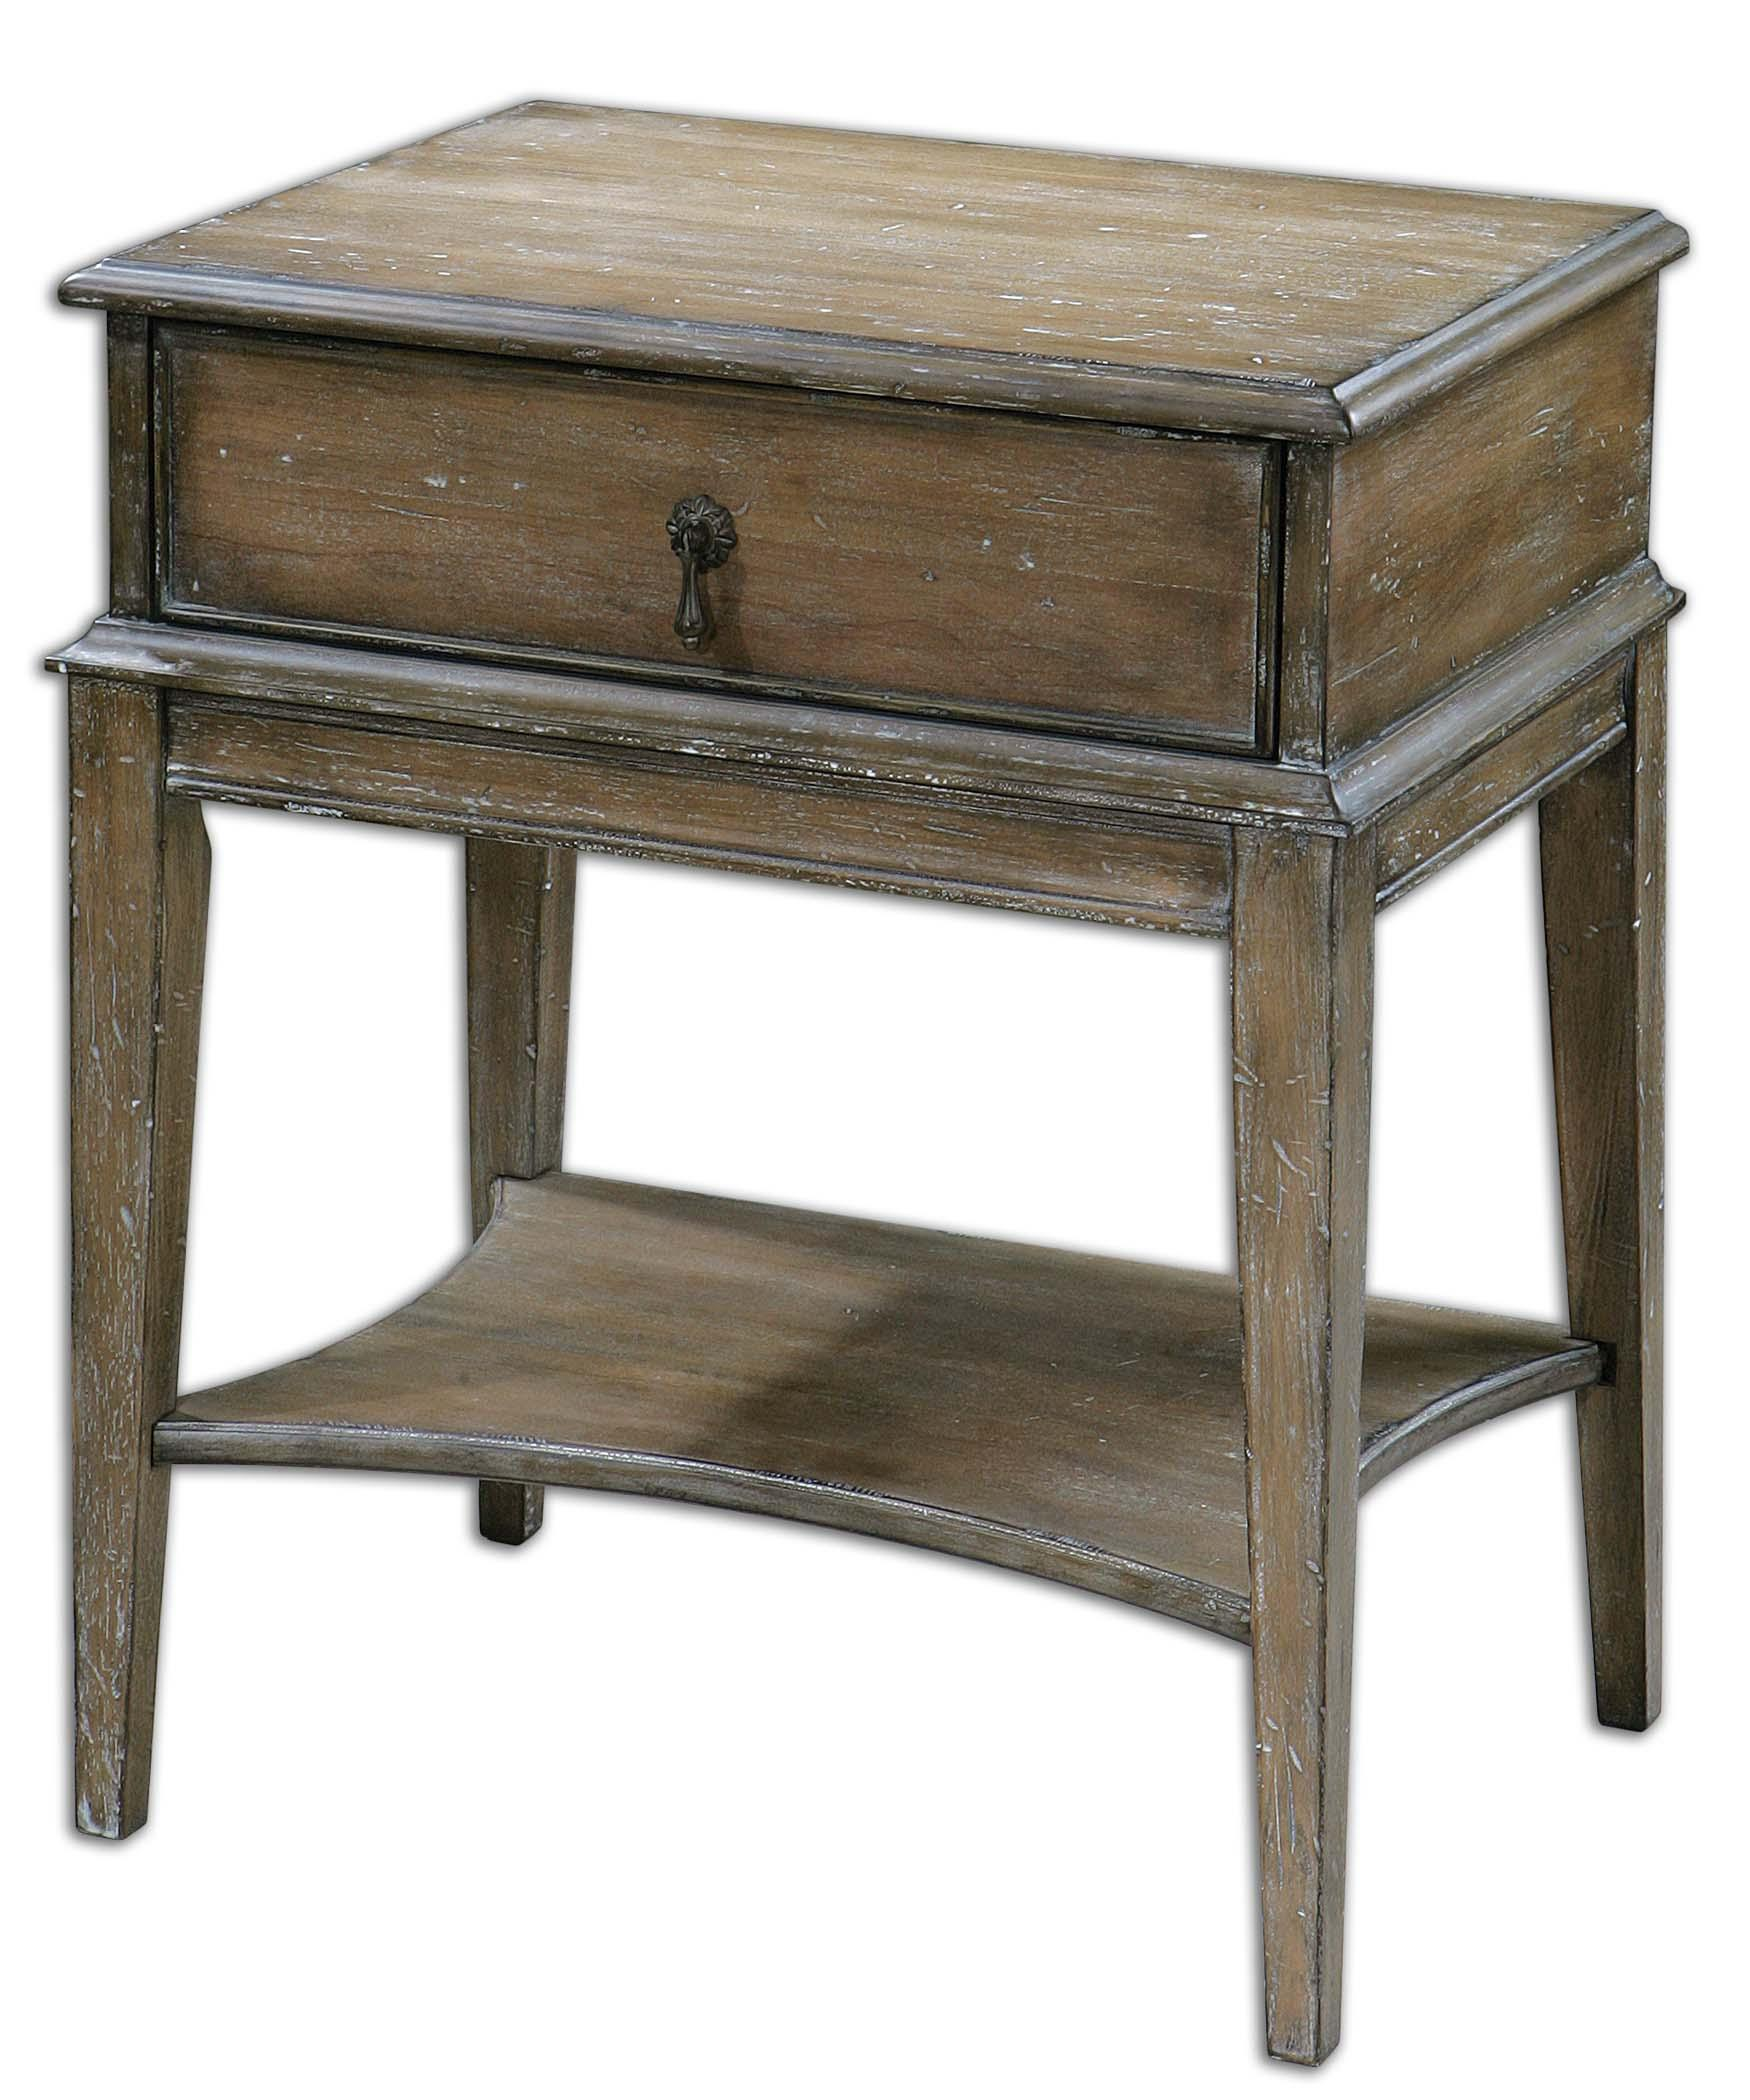 Accent Furniture - Occasional Tables Hanford Weathered Accent Table by Uttermost at Goffena Furniture & Mattress Center